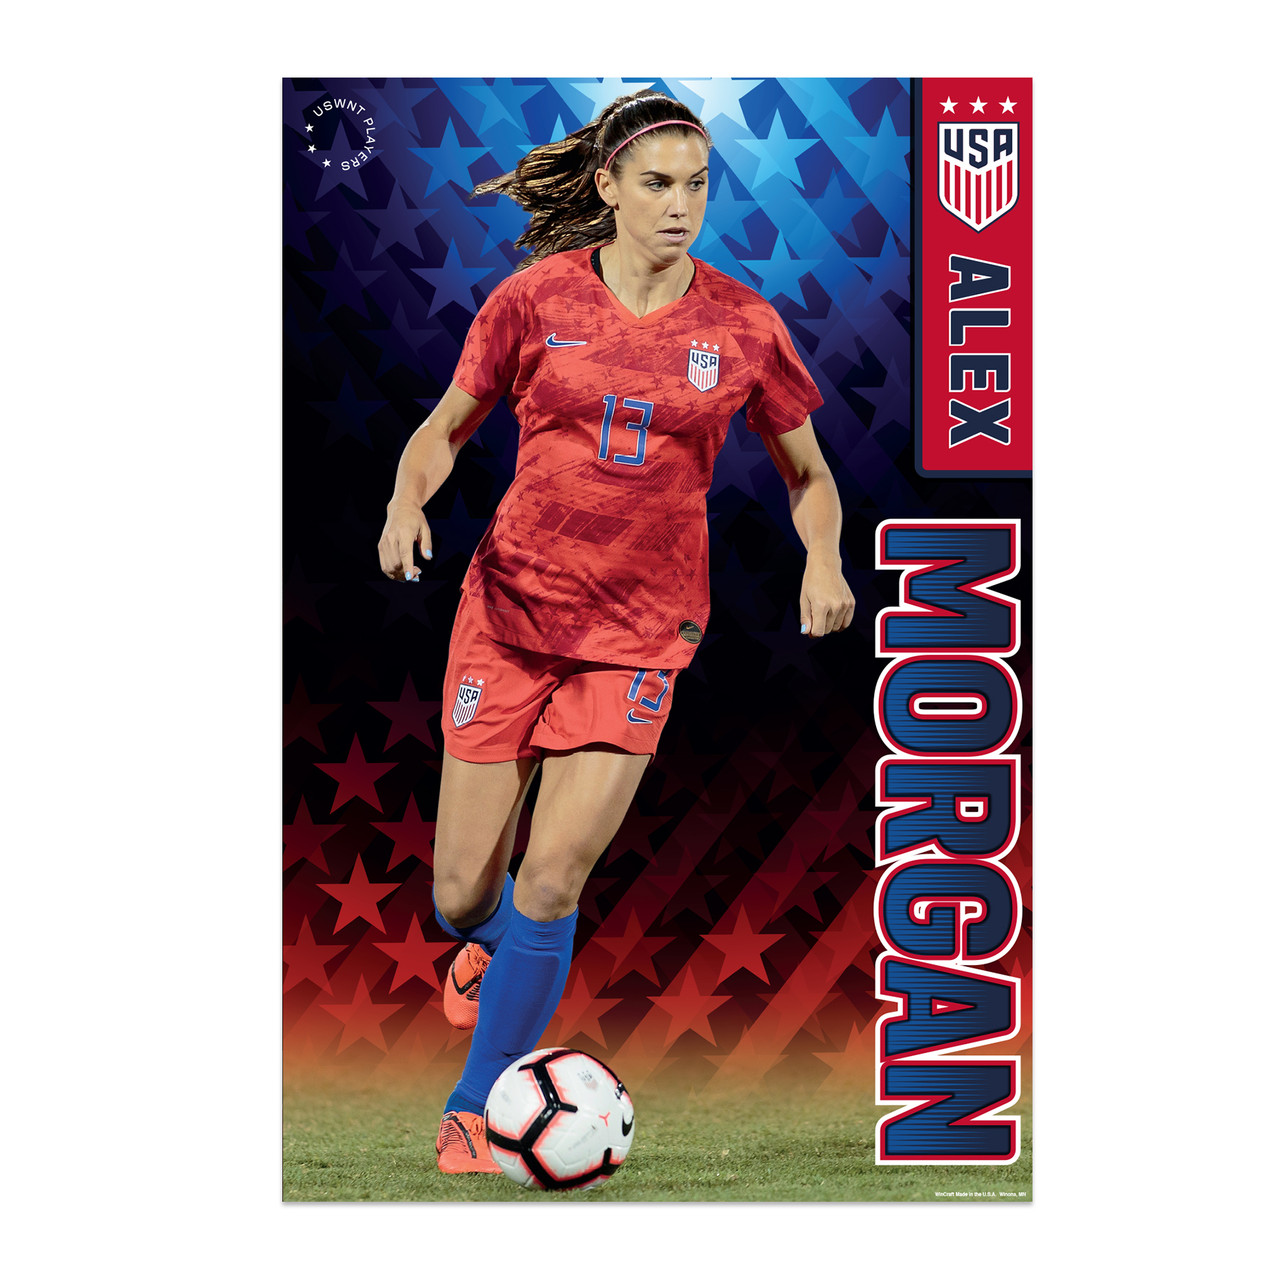 factory authentic 4c407 646f4 Alex Morgan Action Poster 2019